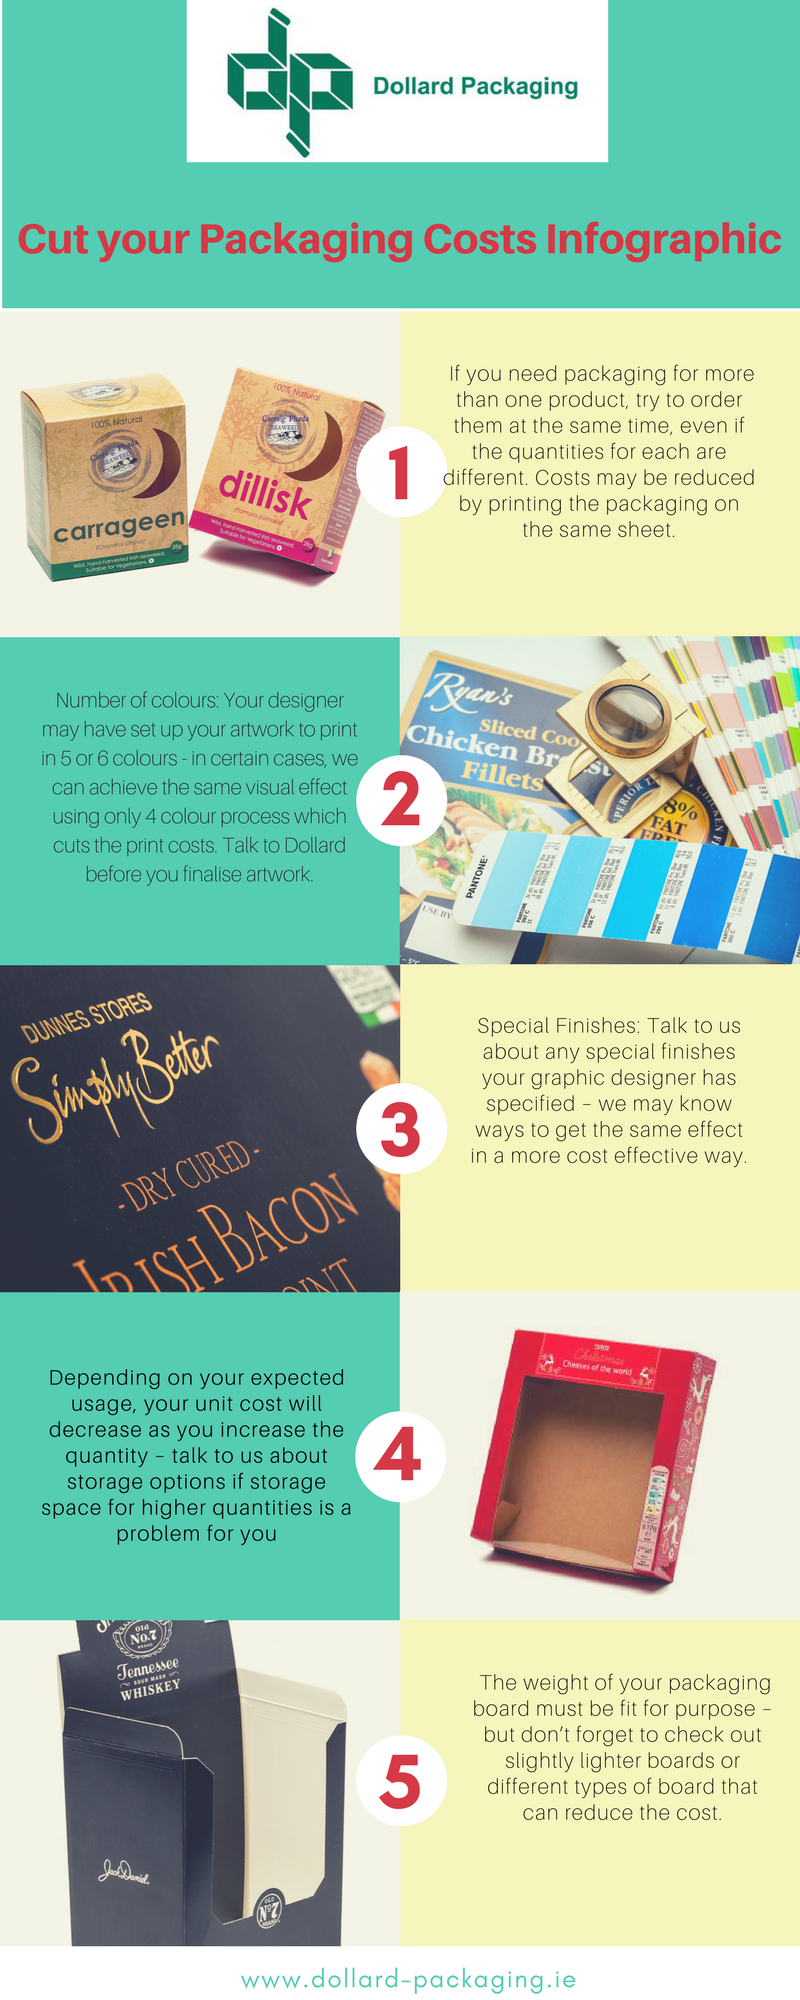 Cut your Packaging Costs Infographic- Dollard Packaging